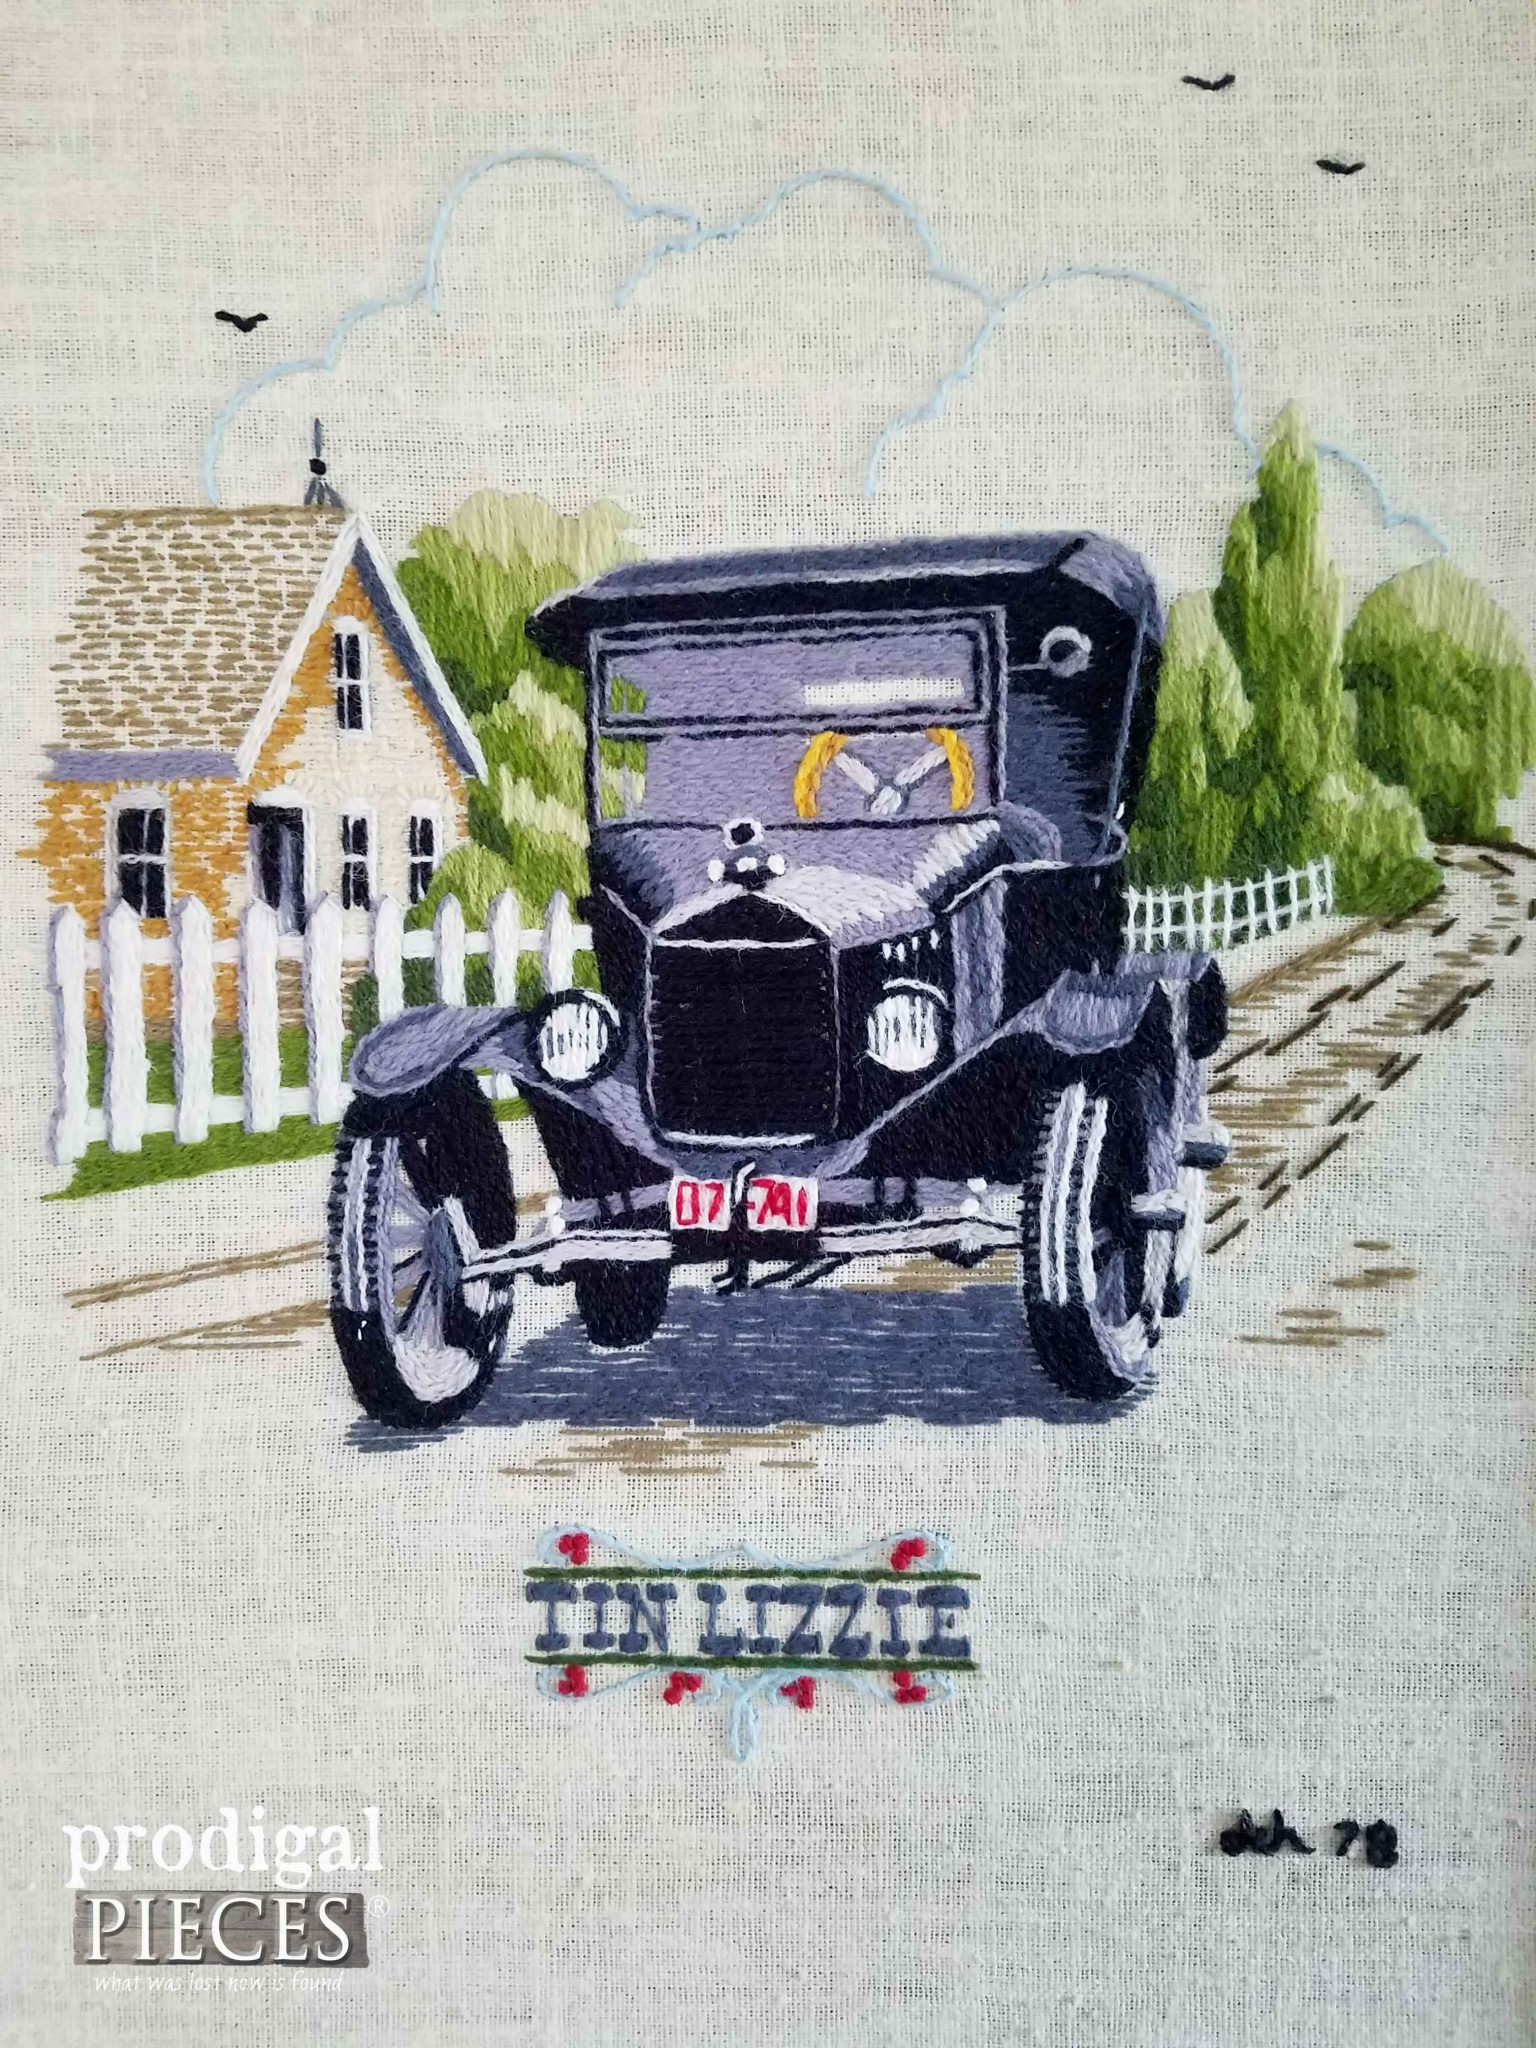 Tin Lizzie Embroidered Wall Art at Prodigal Pieces | prodigalpieces.com